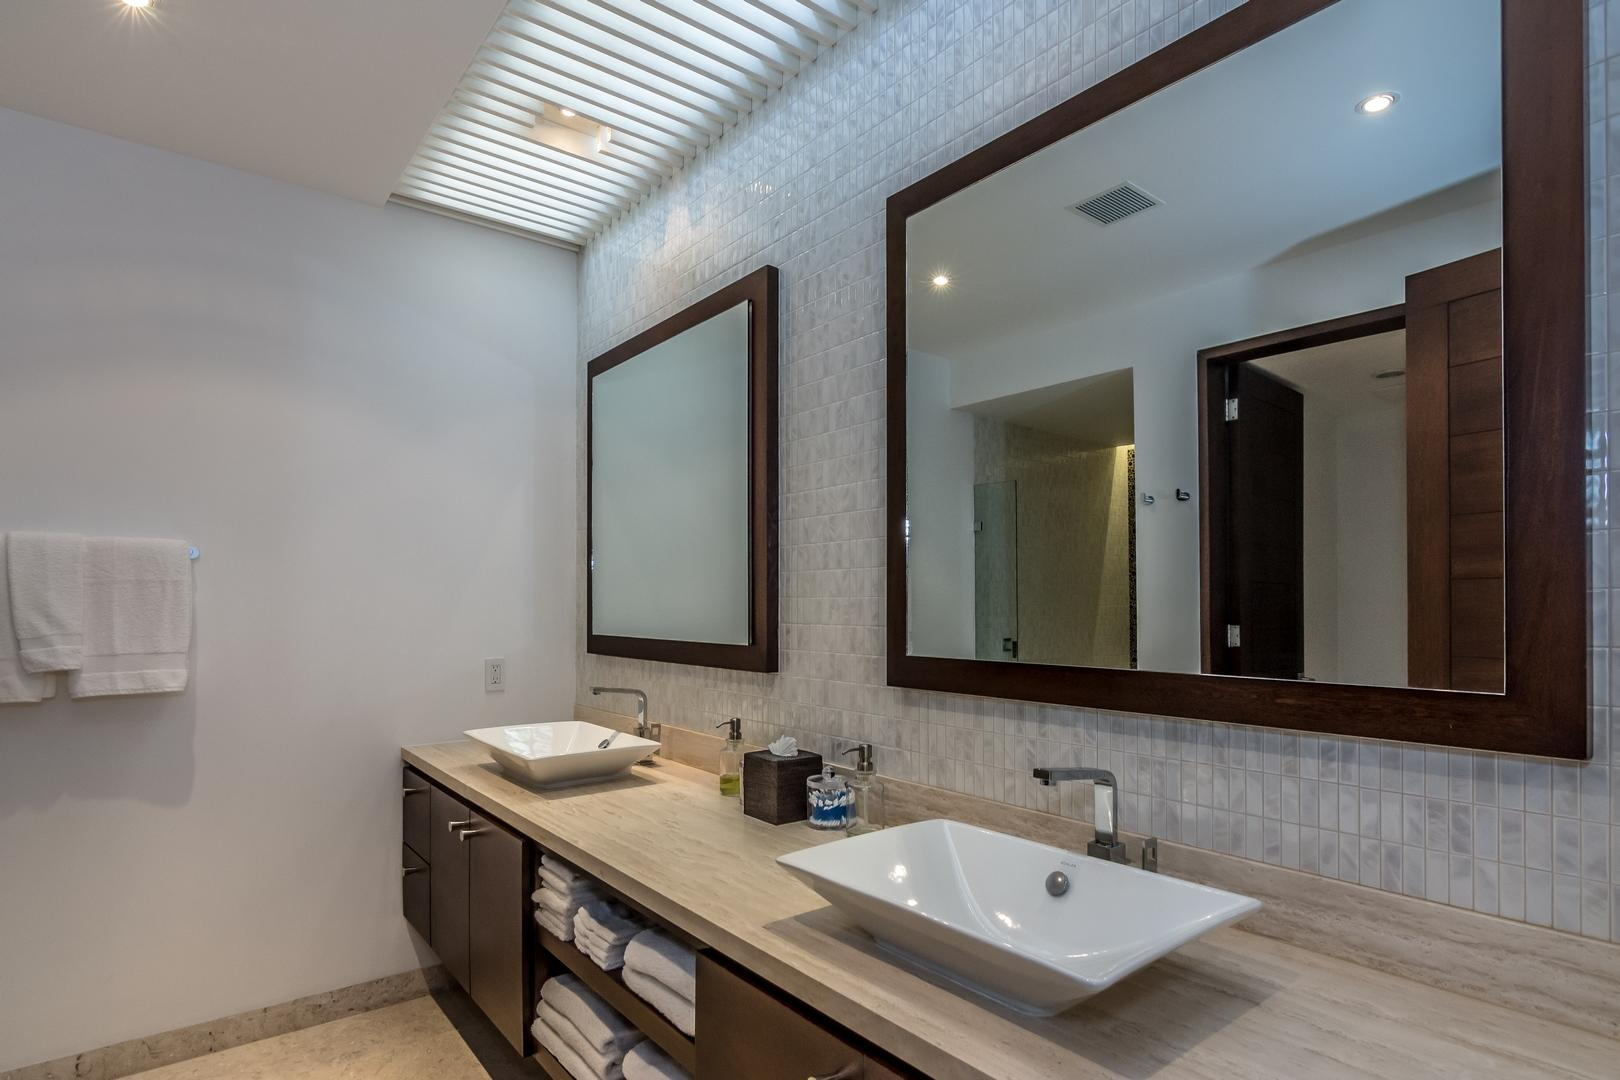 San Jose del Cabo, 4 Bedrooms Bedrooms, ,4 BathroomsBathrooms,House,For Sale,Avenida Padre Kino,19-723